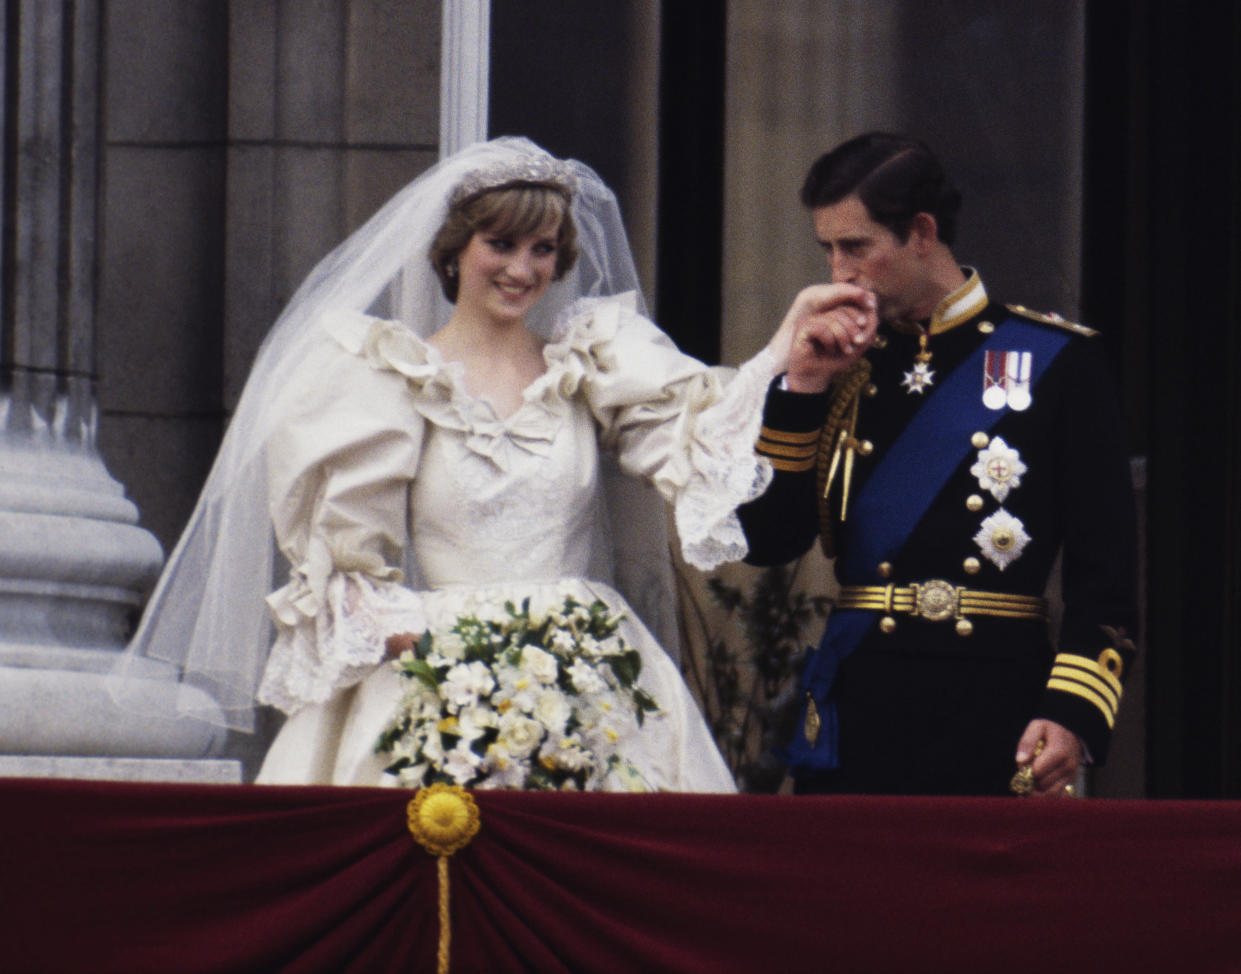 Princess Diana with her favourite white garden roses on her wedding day with Prince Charles. Source: Getty